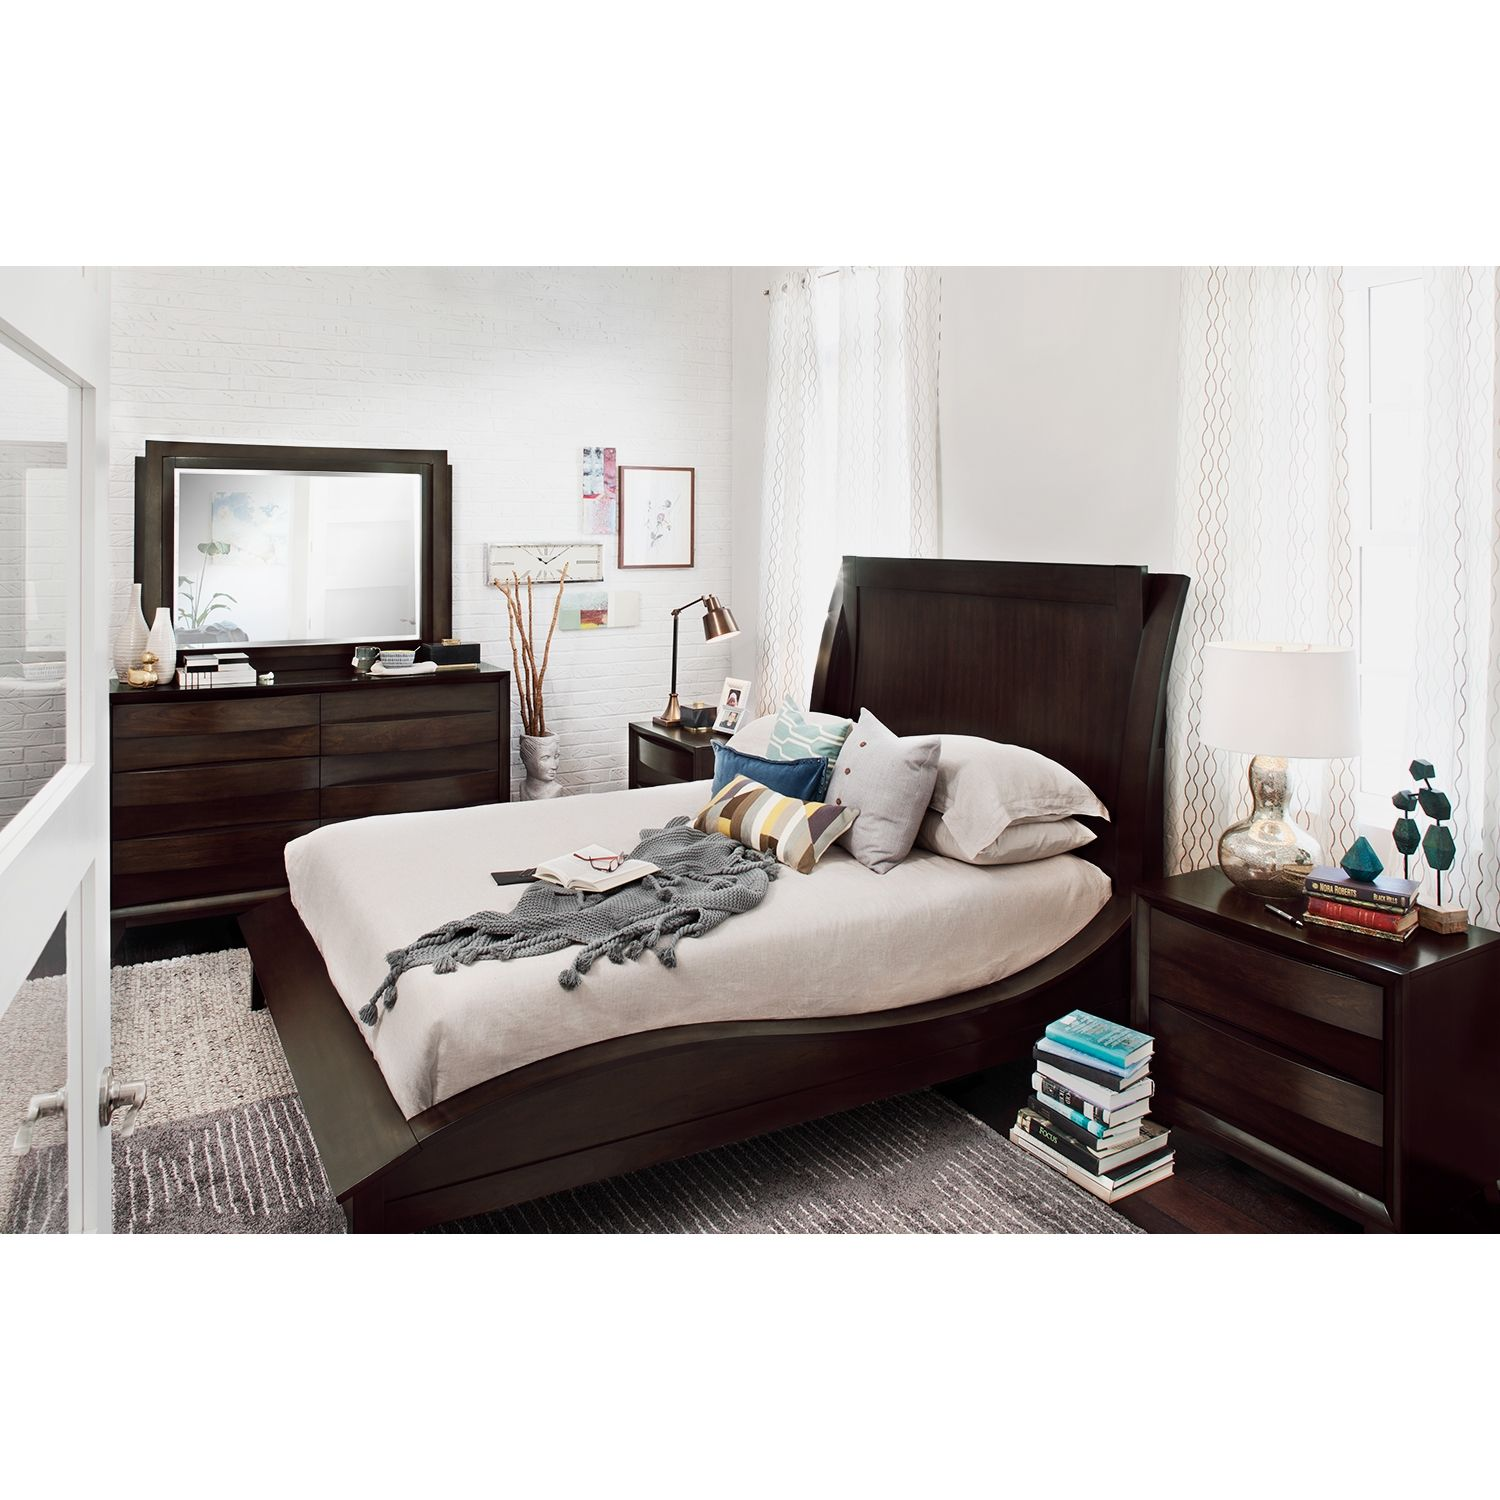 Cascade Merlot King Bed | American Signature Furniture | New House ...